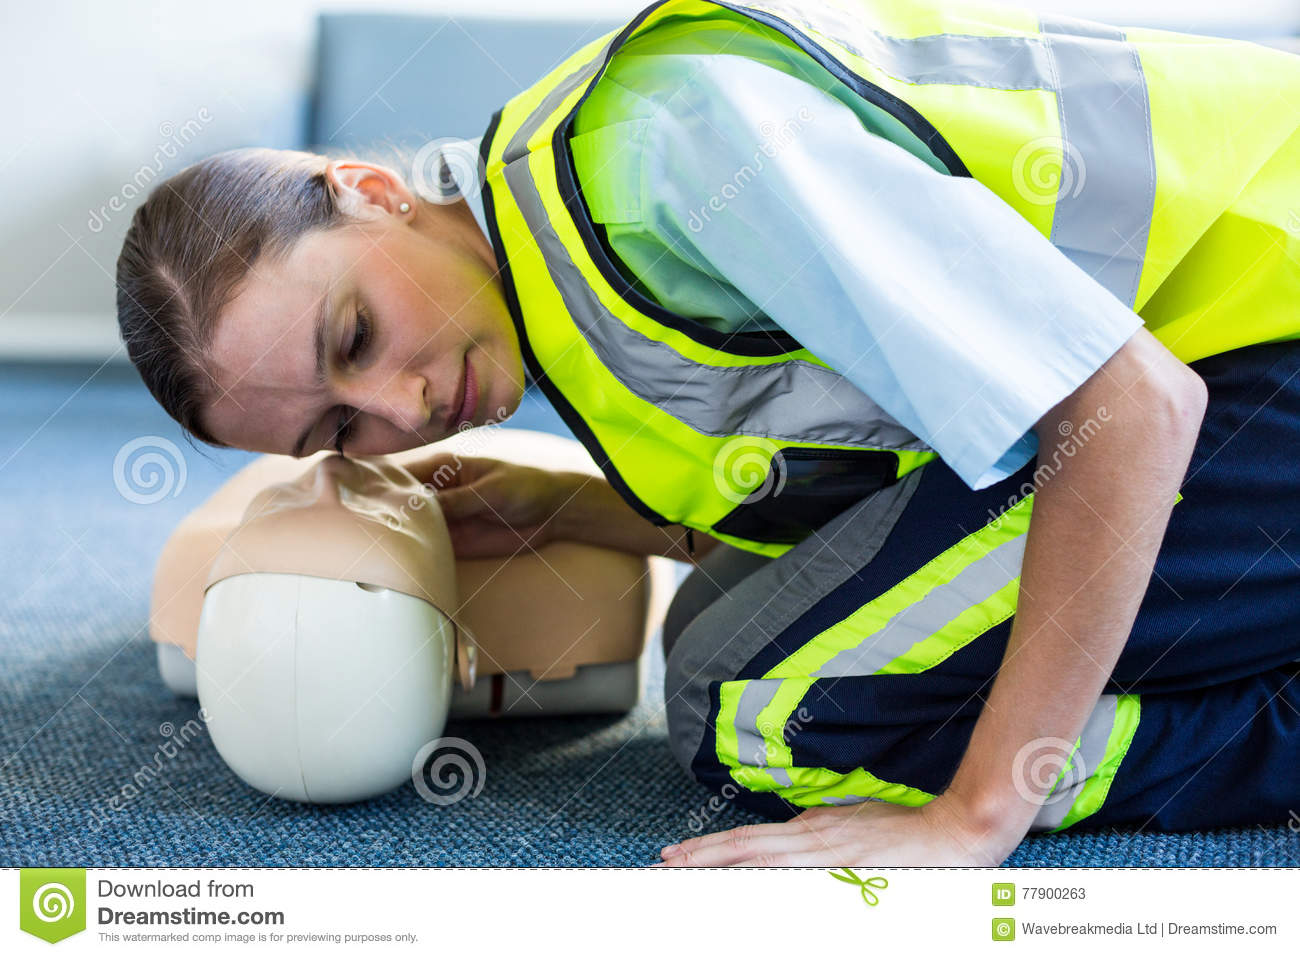 Download Female Paramedic During Cardiopulmonary Resuscitation Training Stock Image - Image of heart, practicing: 77900263